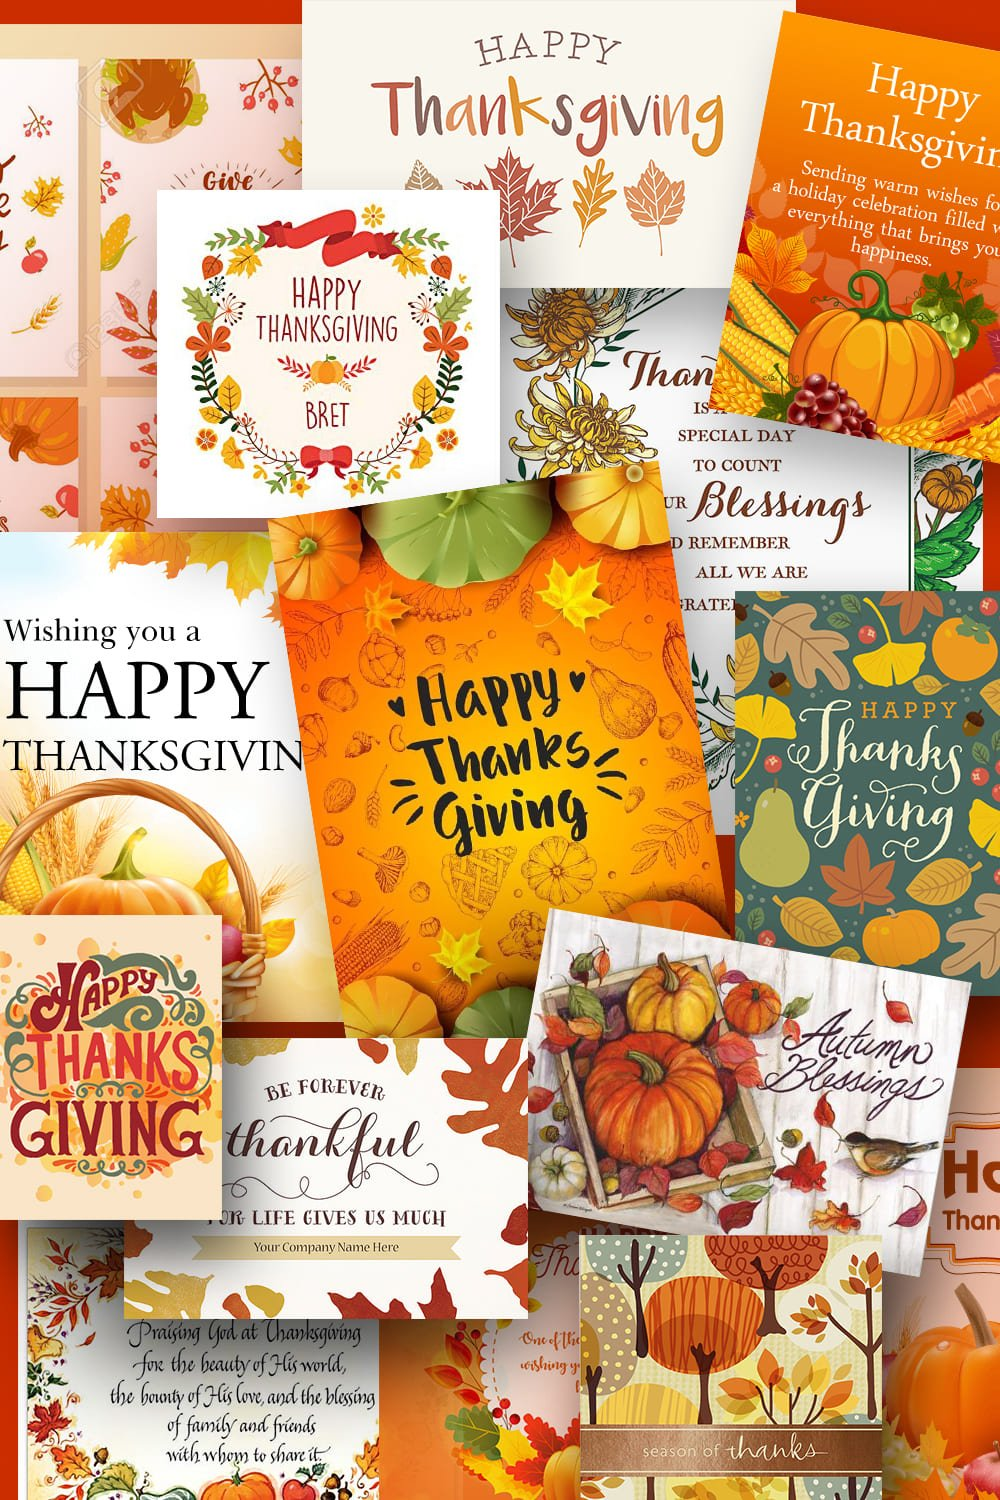 Thanksgiving Cards. Pinterest Image.